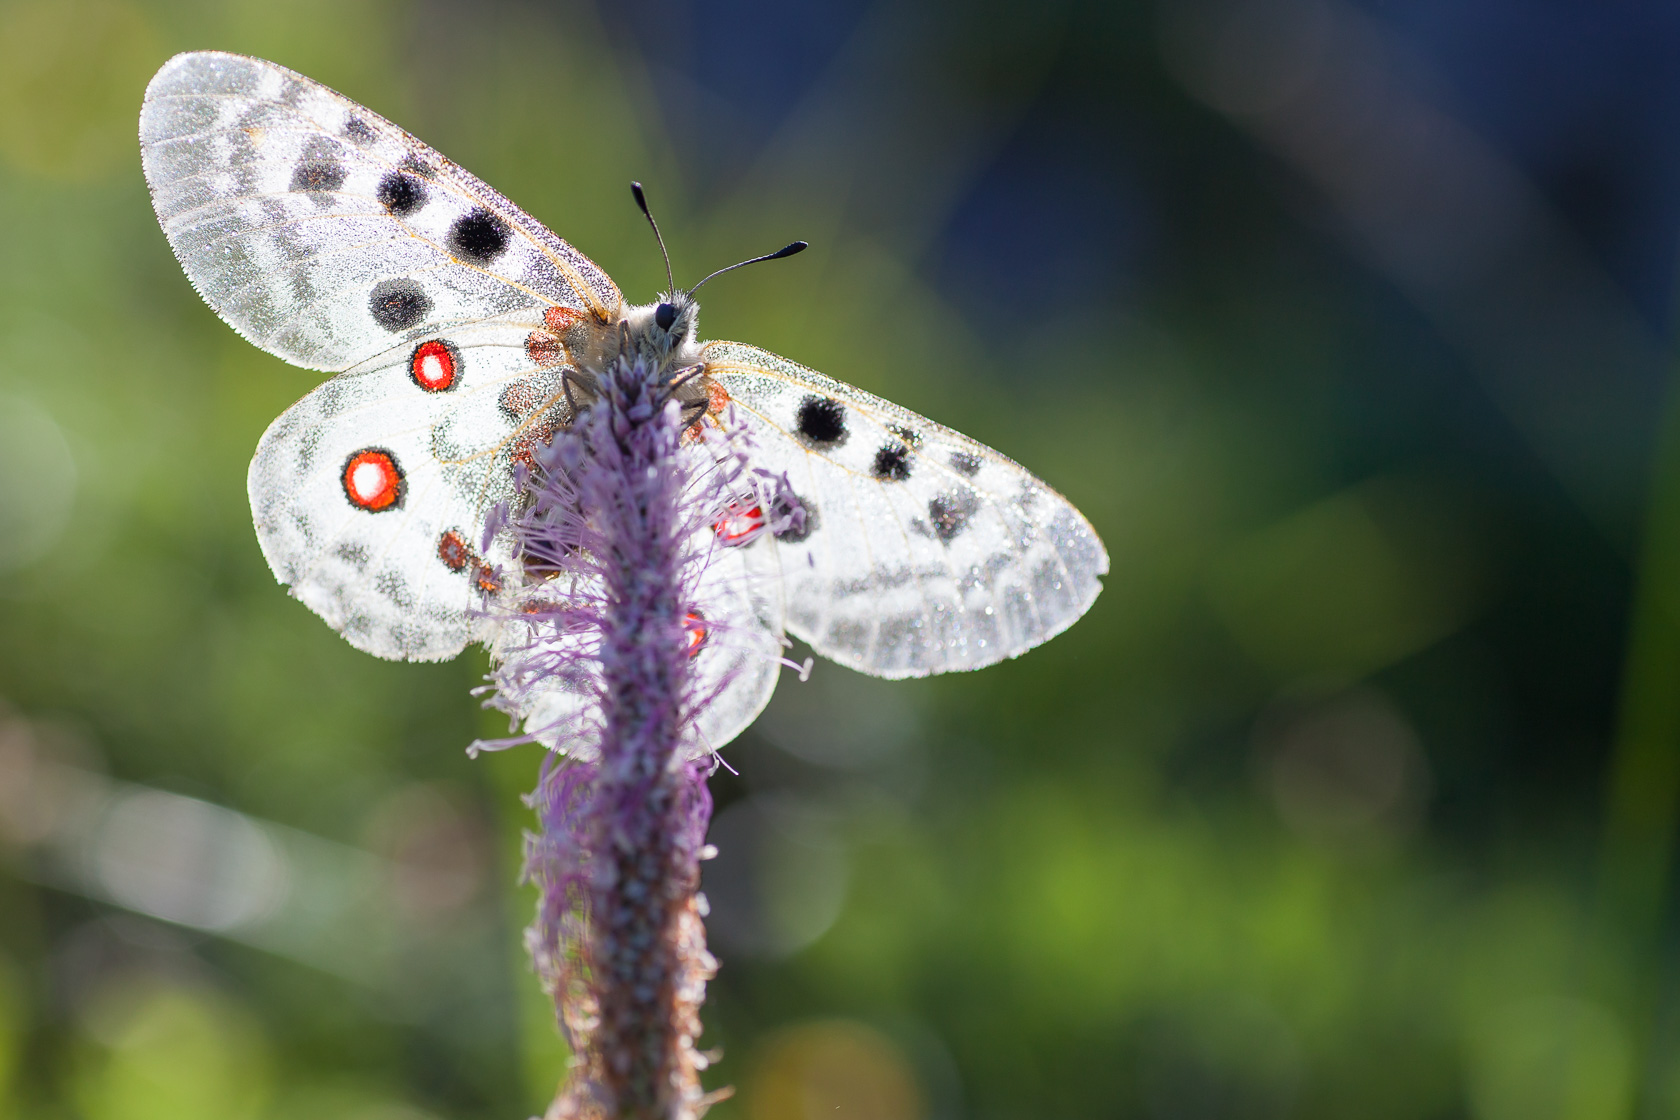 Papillon Apollon (Parnassius apollo) dans les Bauges pendant un stage photo papillon